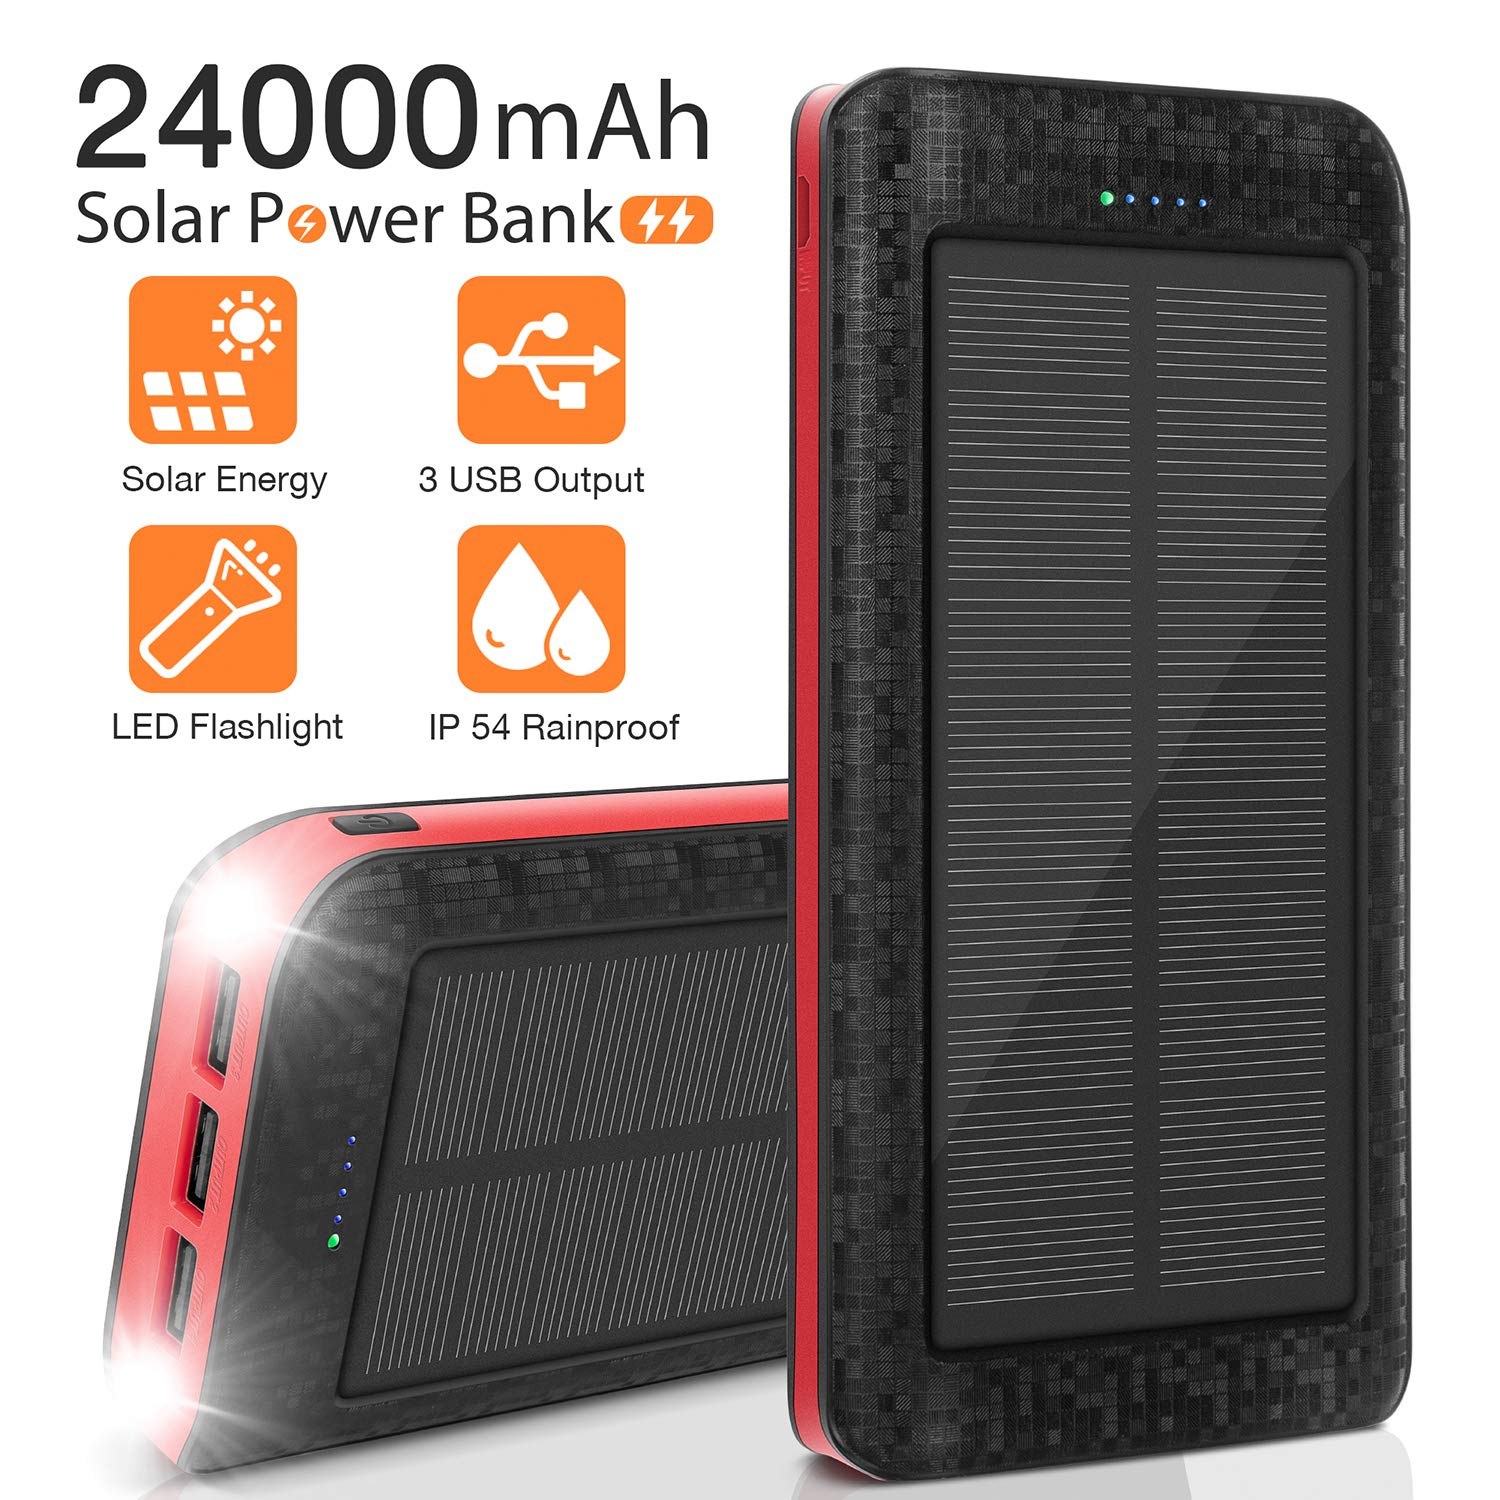 Solar Charger 24000mAh, Portable Phone Charger External Battery Pack Backup Charger, High-Speed 5V/2.1A Tri-USB Output Ports, Flashlight, IPX5 Rainproof for Camping, Travel, Emergency by AMAES